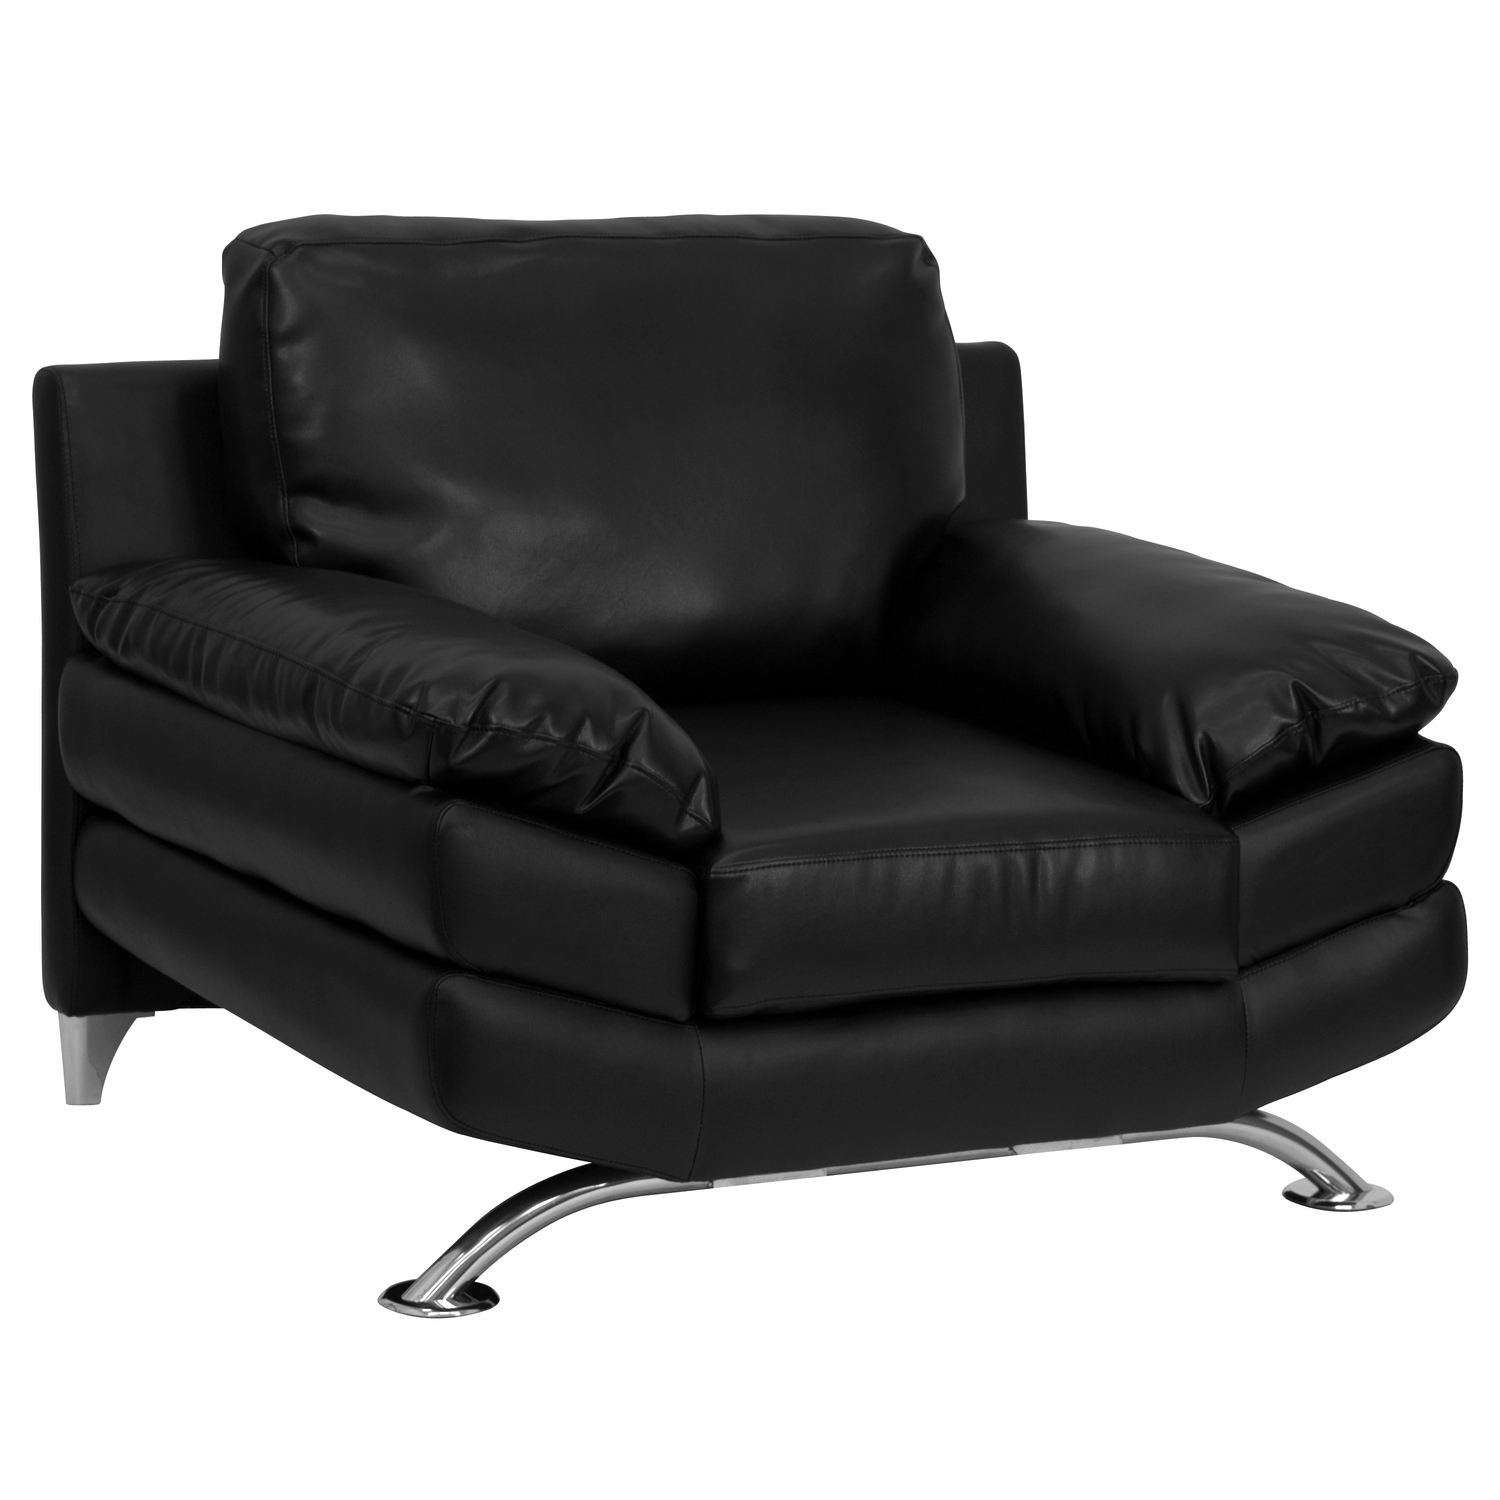 plush leather chair modern red flash hercules excel series black with